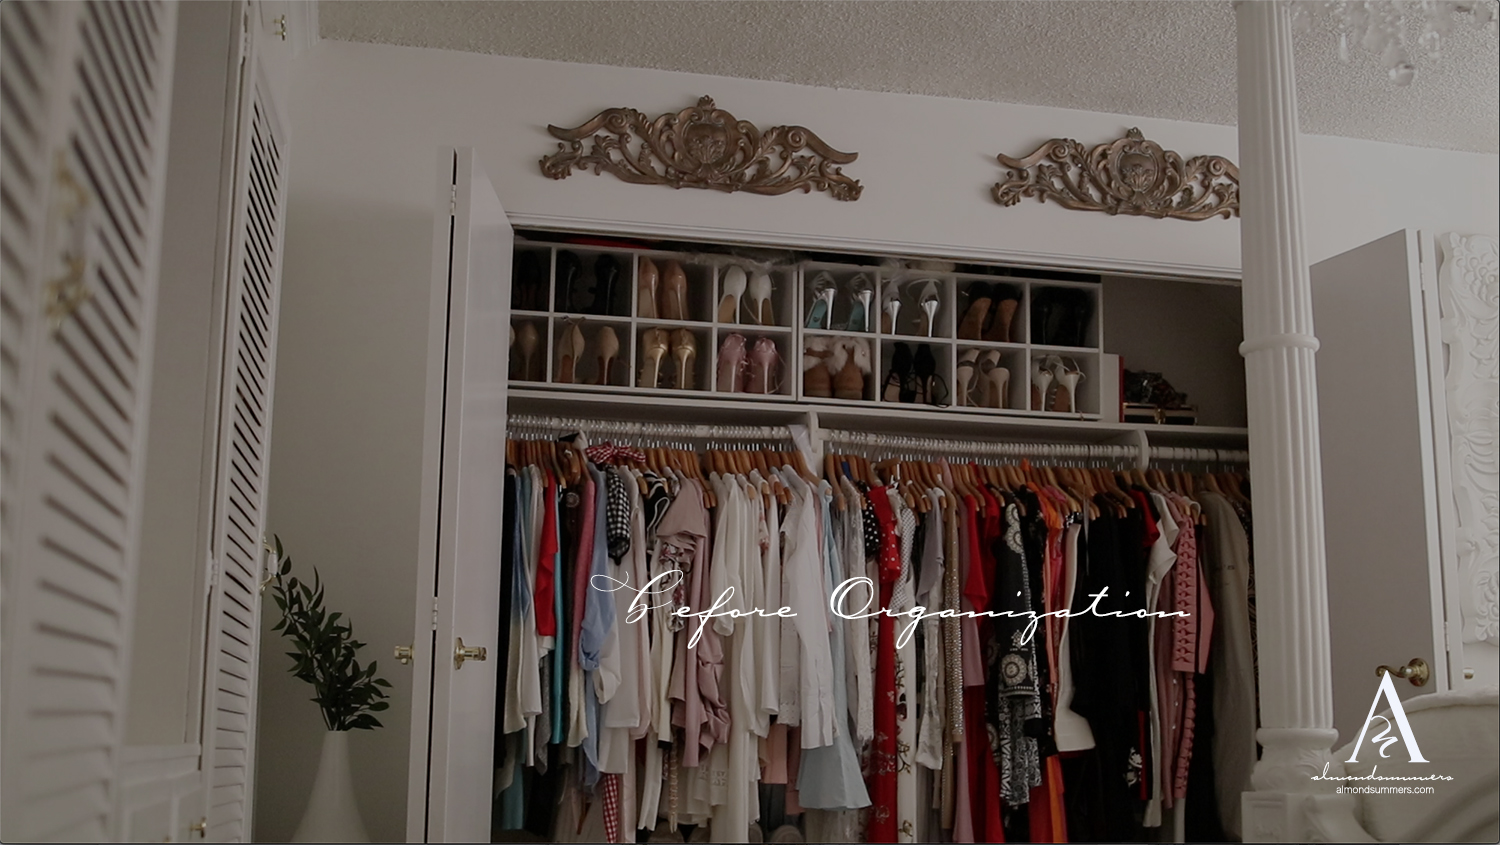 Before and After Closet Organization Closet Decorating Ideas | How To Decorate Your Closet | DIY Closet Organization | Organizing a Small Closet | DIY Closet Shelves Small closet organization ideas